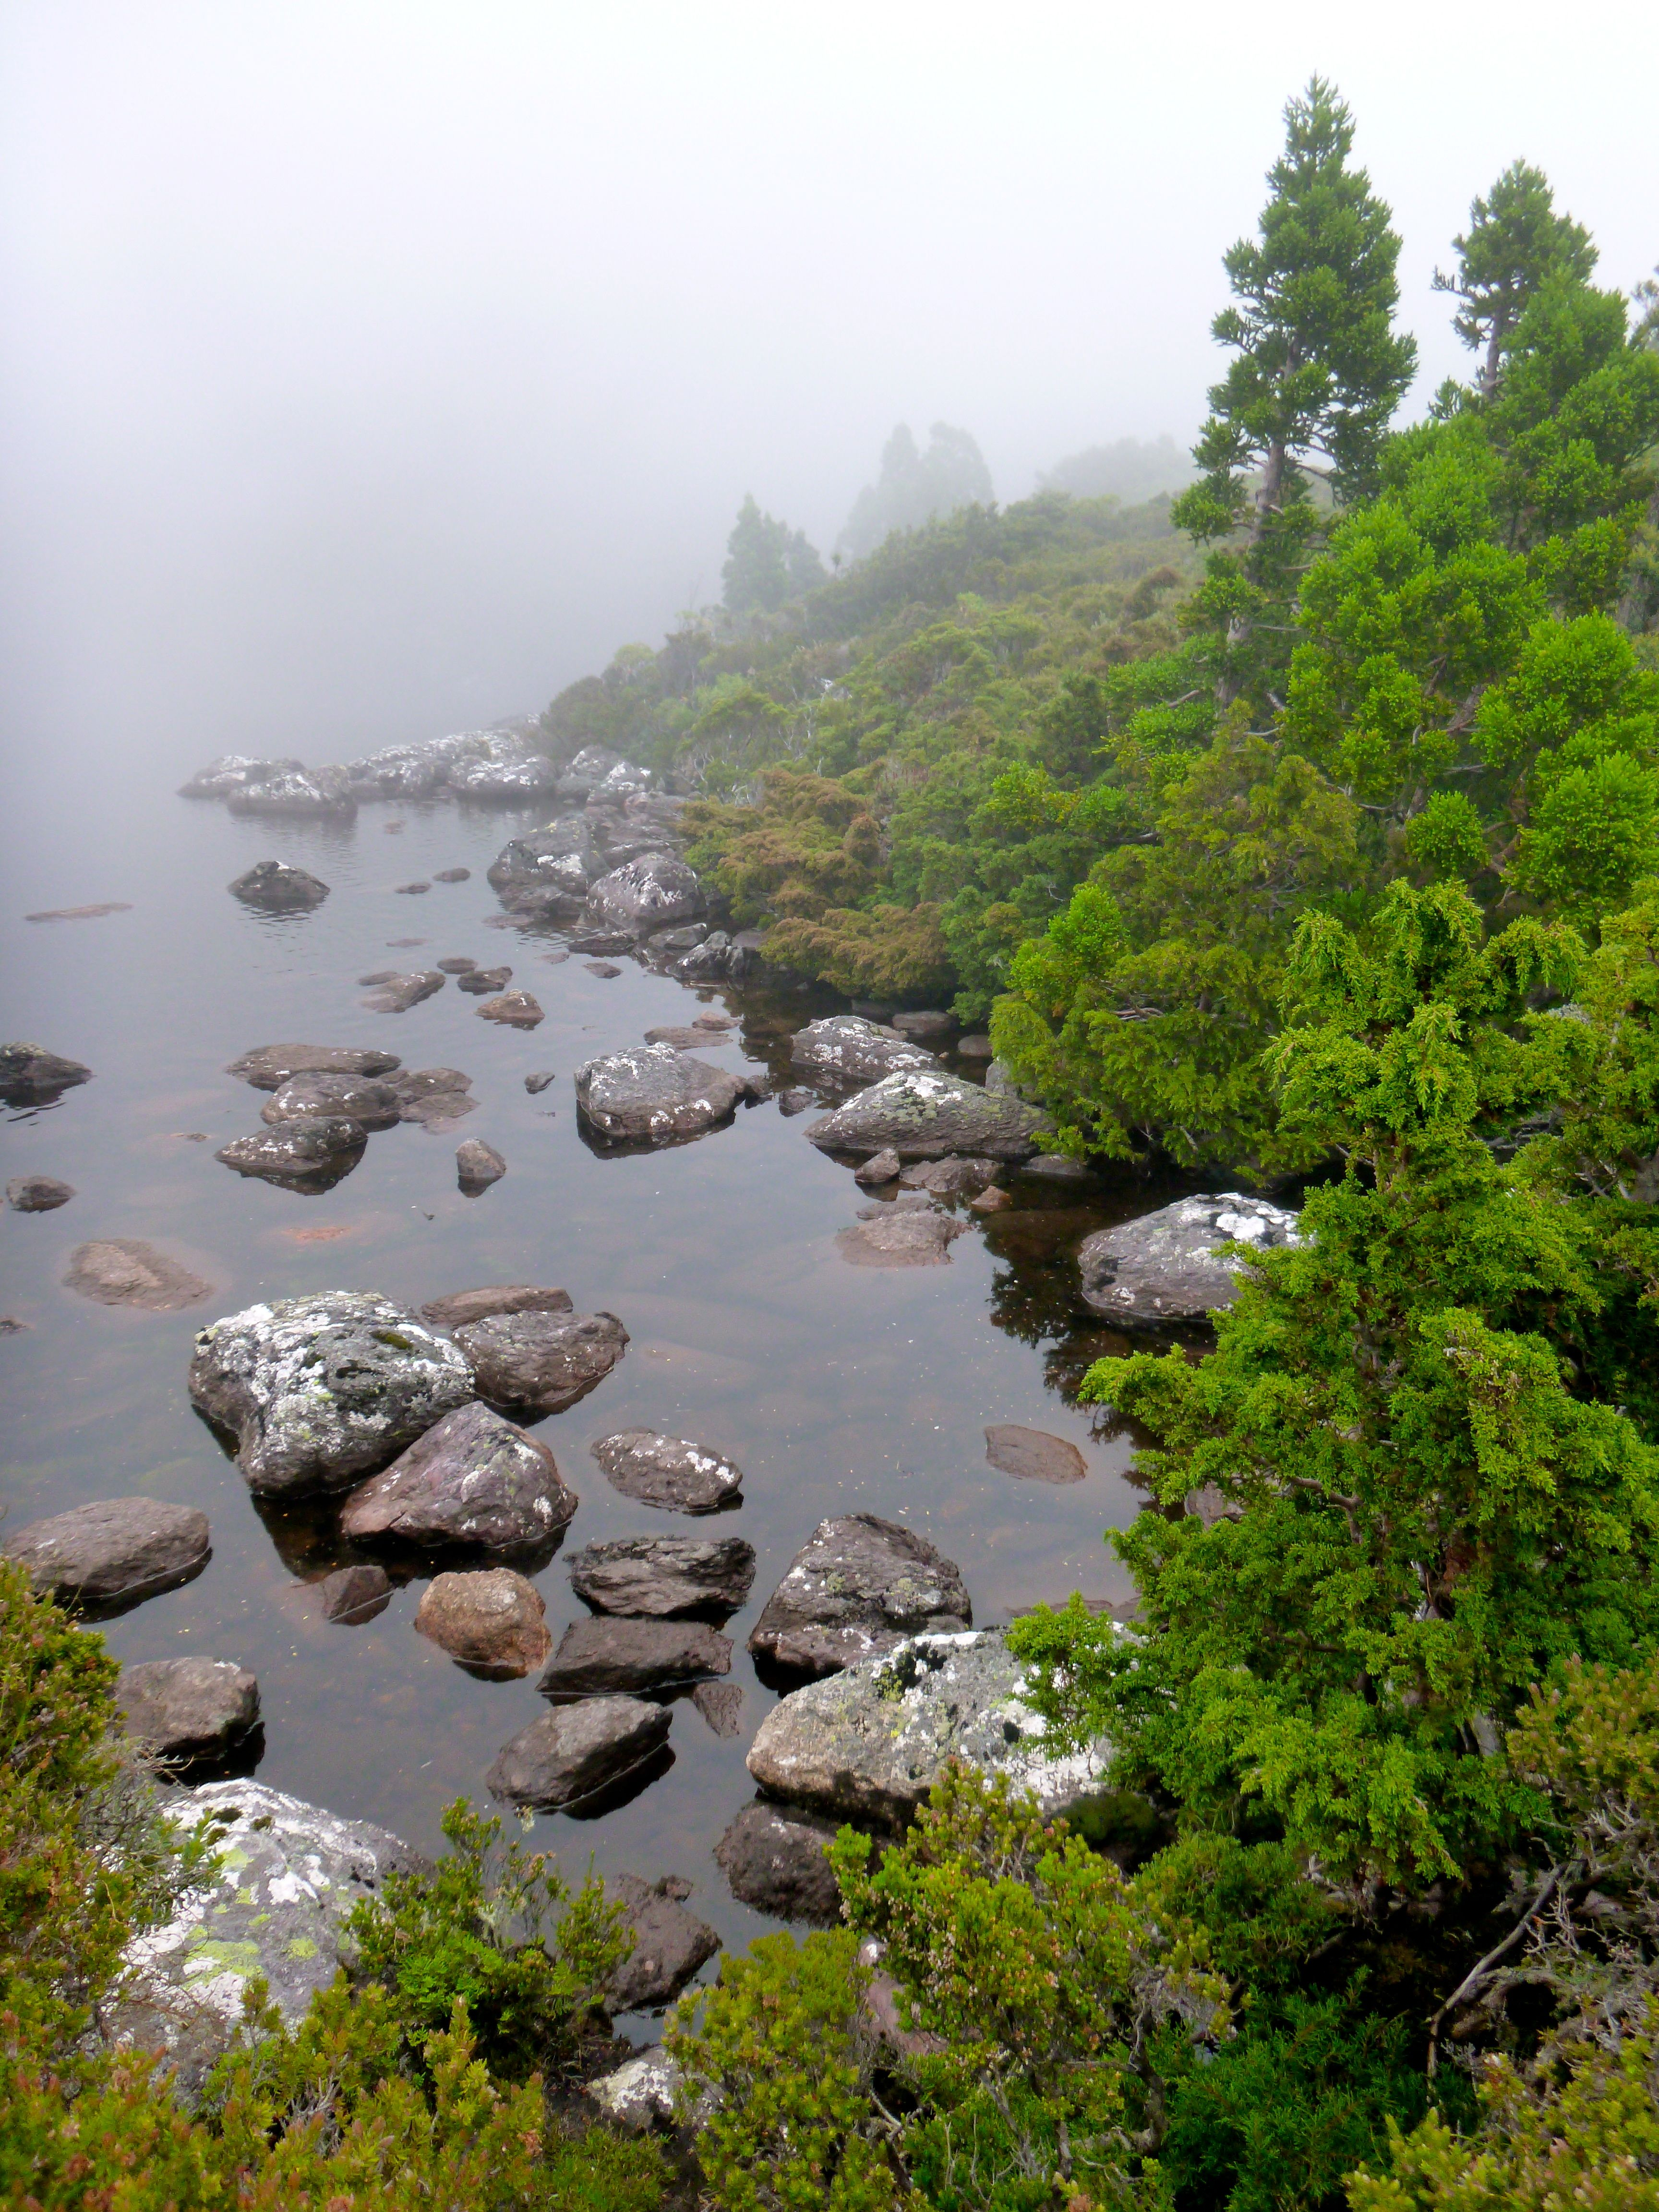 Paddys Lake on the way up, perfect beauty hidden and revealed as desired by the cloak of mist